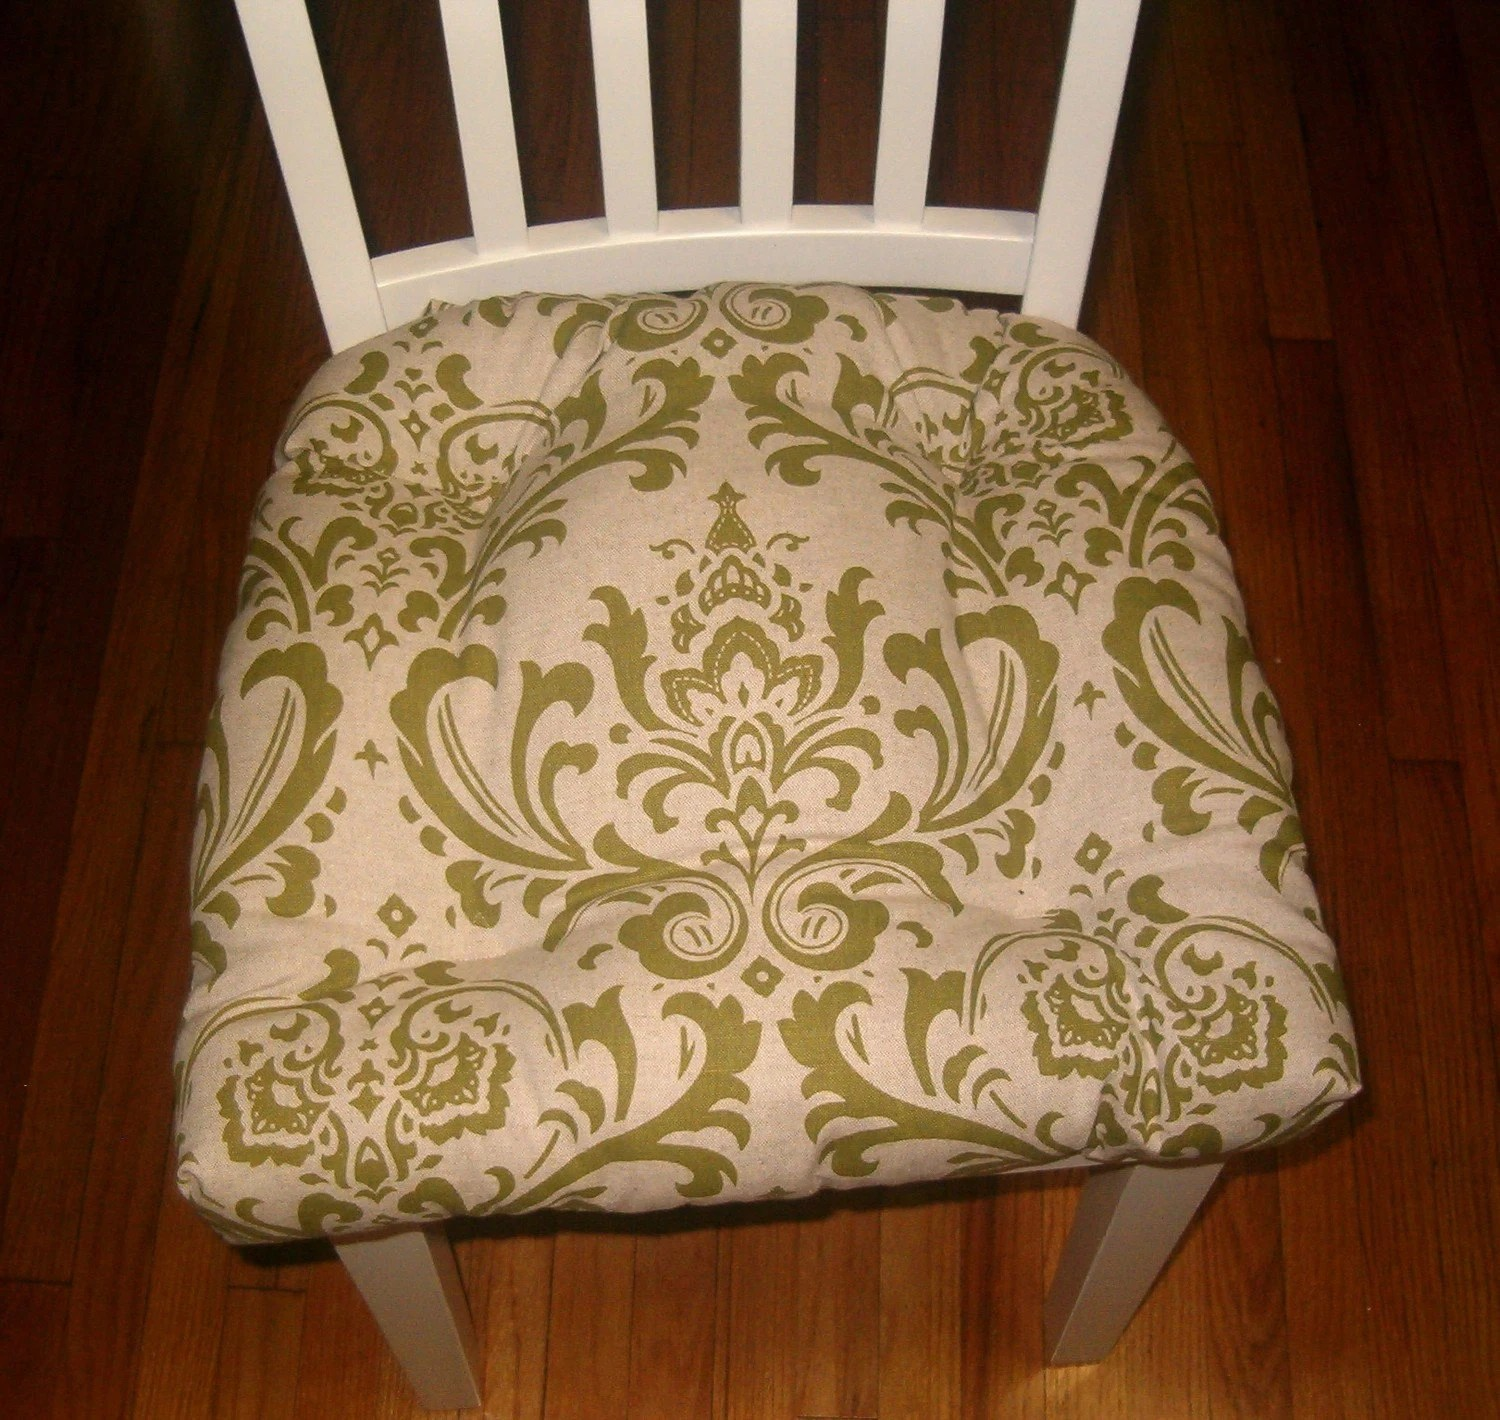 green chair cushions folding beach chairs target australia set of 4 olive damask pads tufted seat cushion